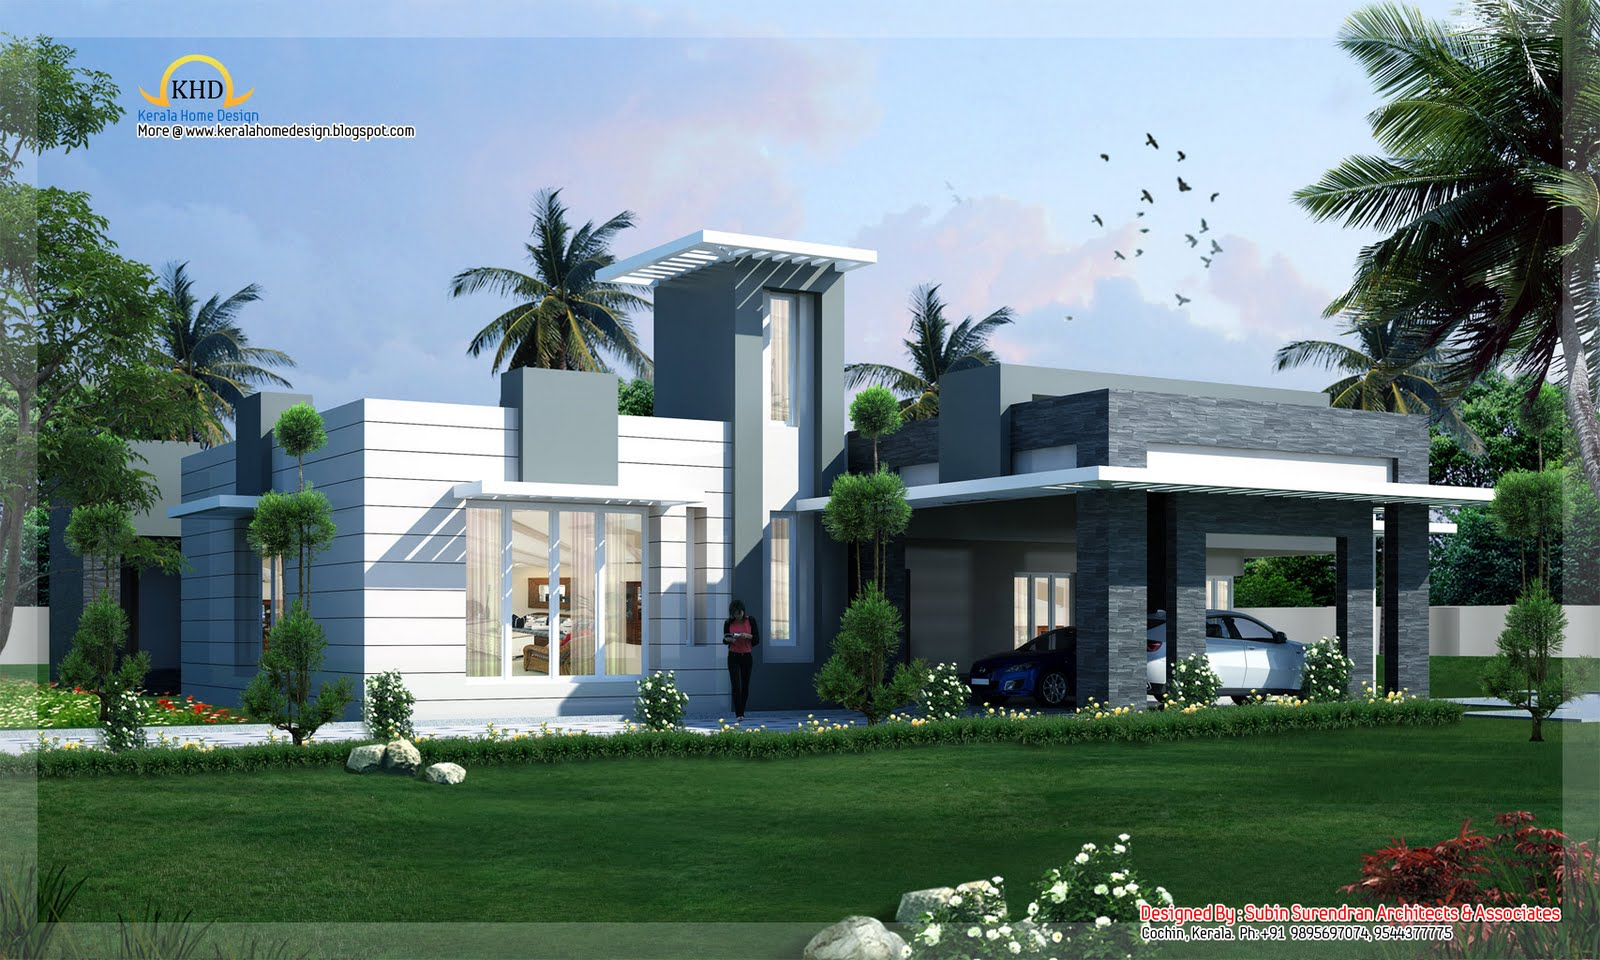 Modern contemporary home design 4500 sq ft home appliance for Modern home blueprints